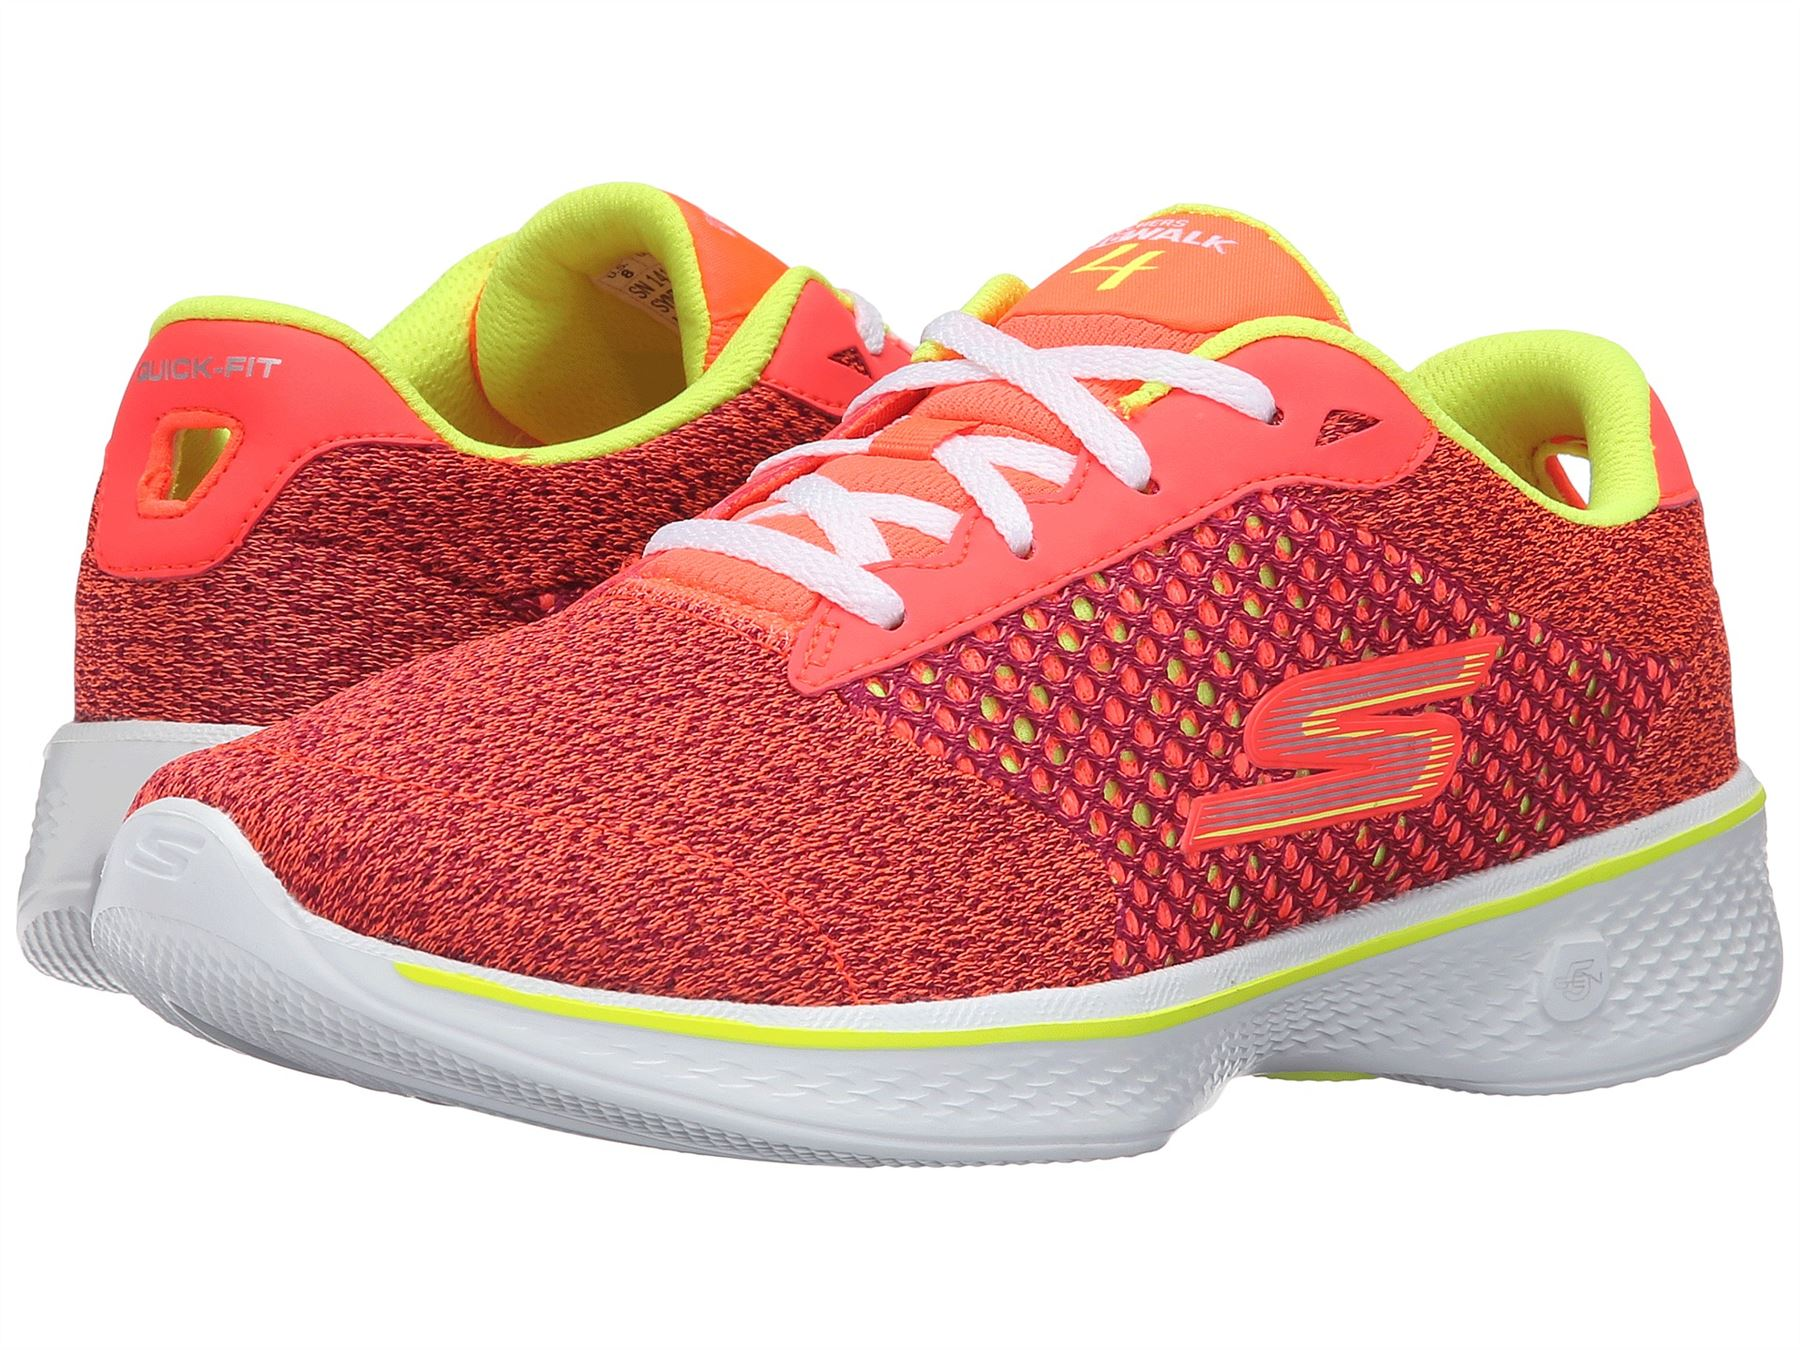 Skechers Gowalk 4 Exceed Sneaker Pink/Lime - Womens Shoes